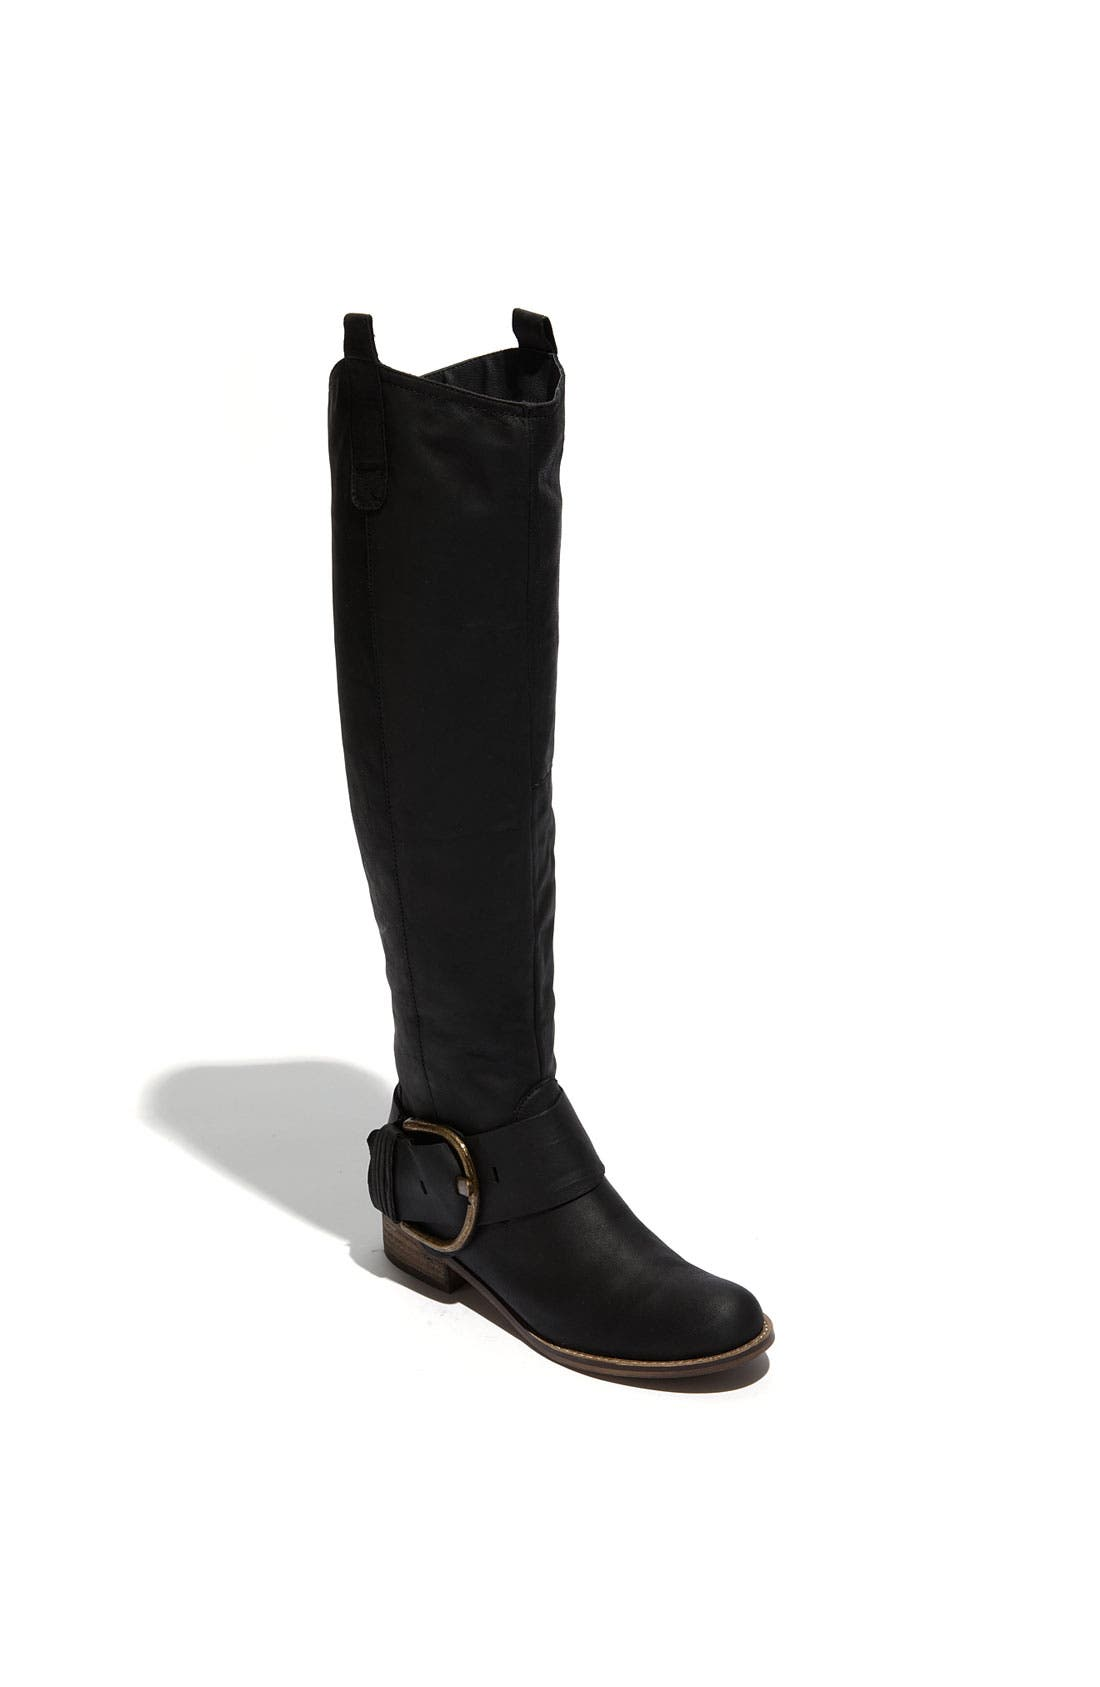 Main Image - Steven by Steve Madden 'Satirday' Over the Knee Boot